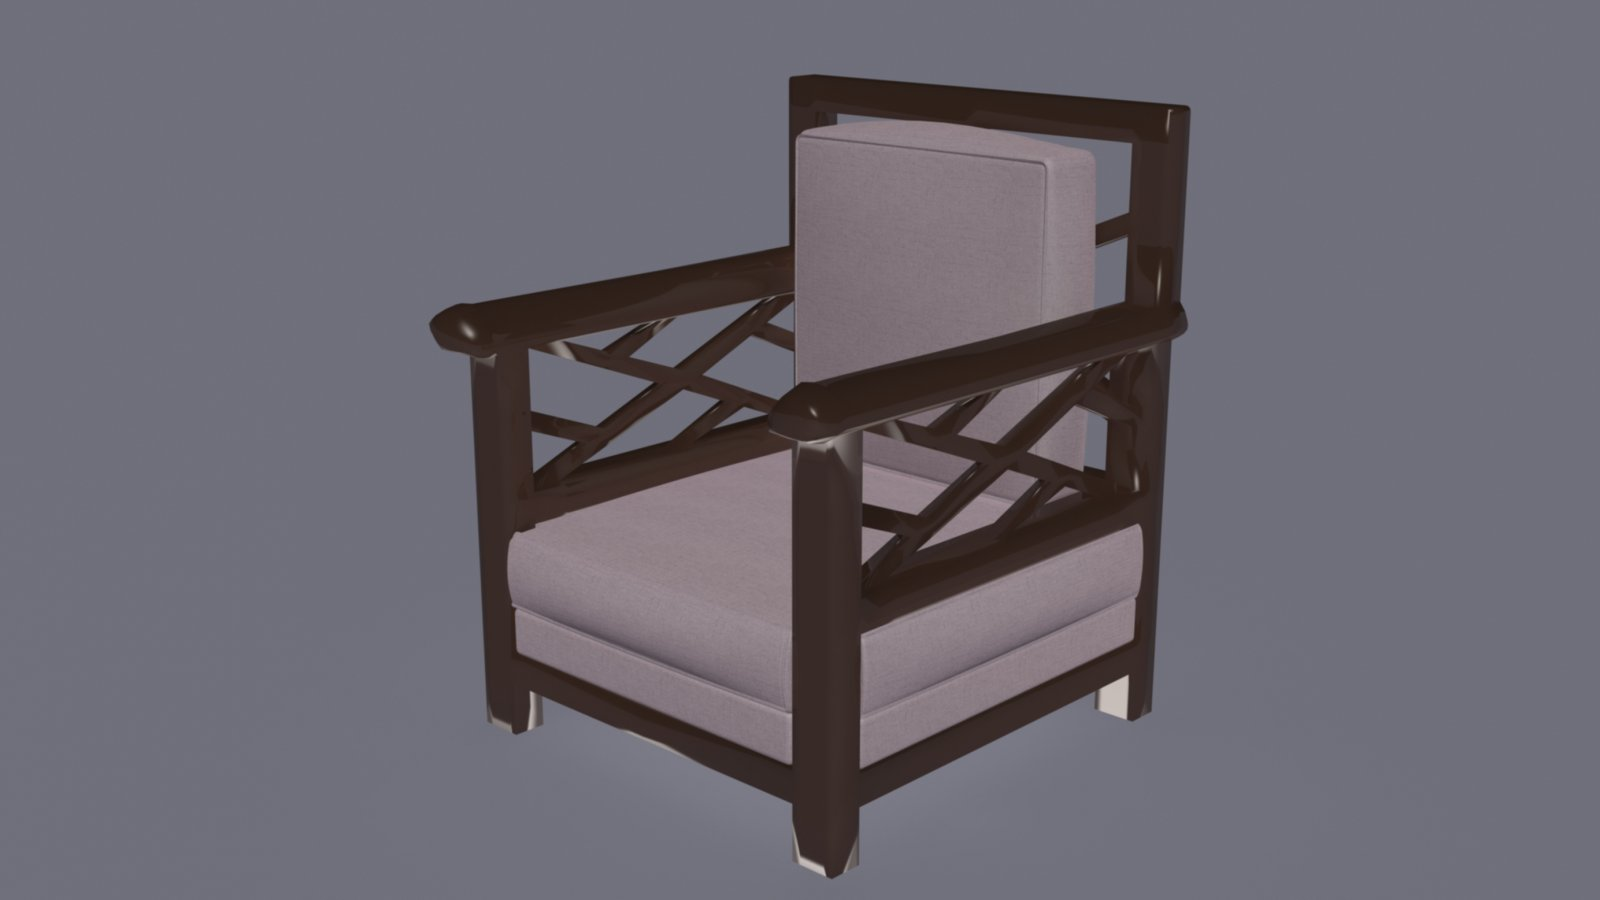 Edward Lounch Chair render 1.jpg